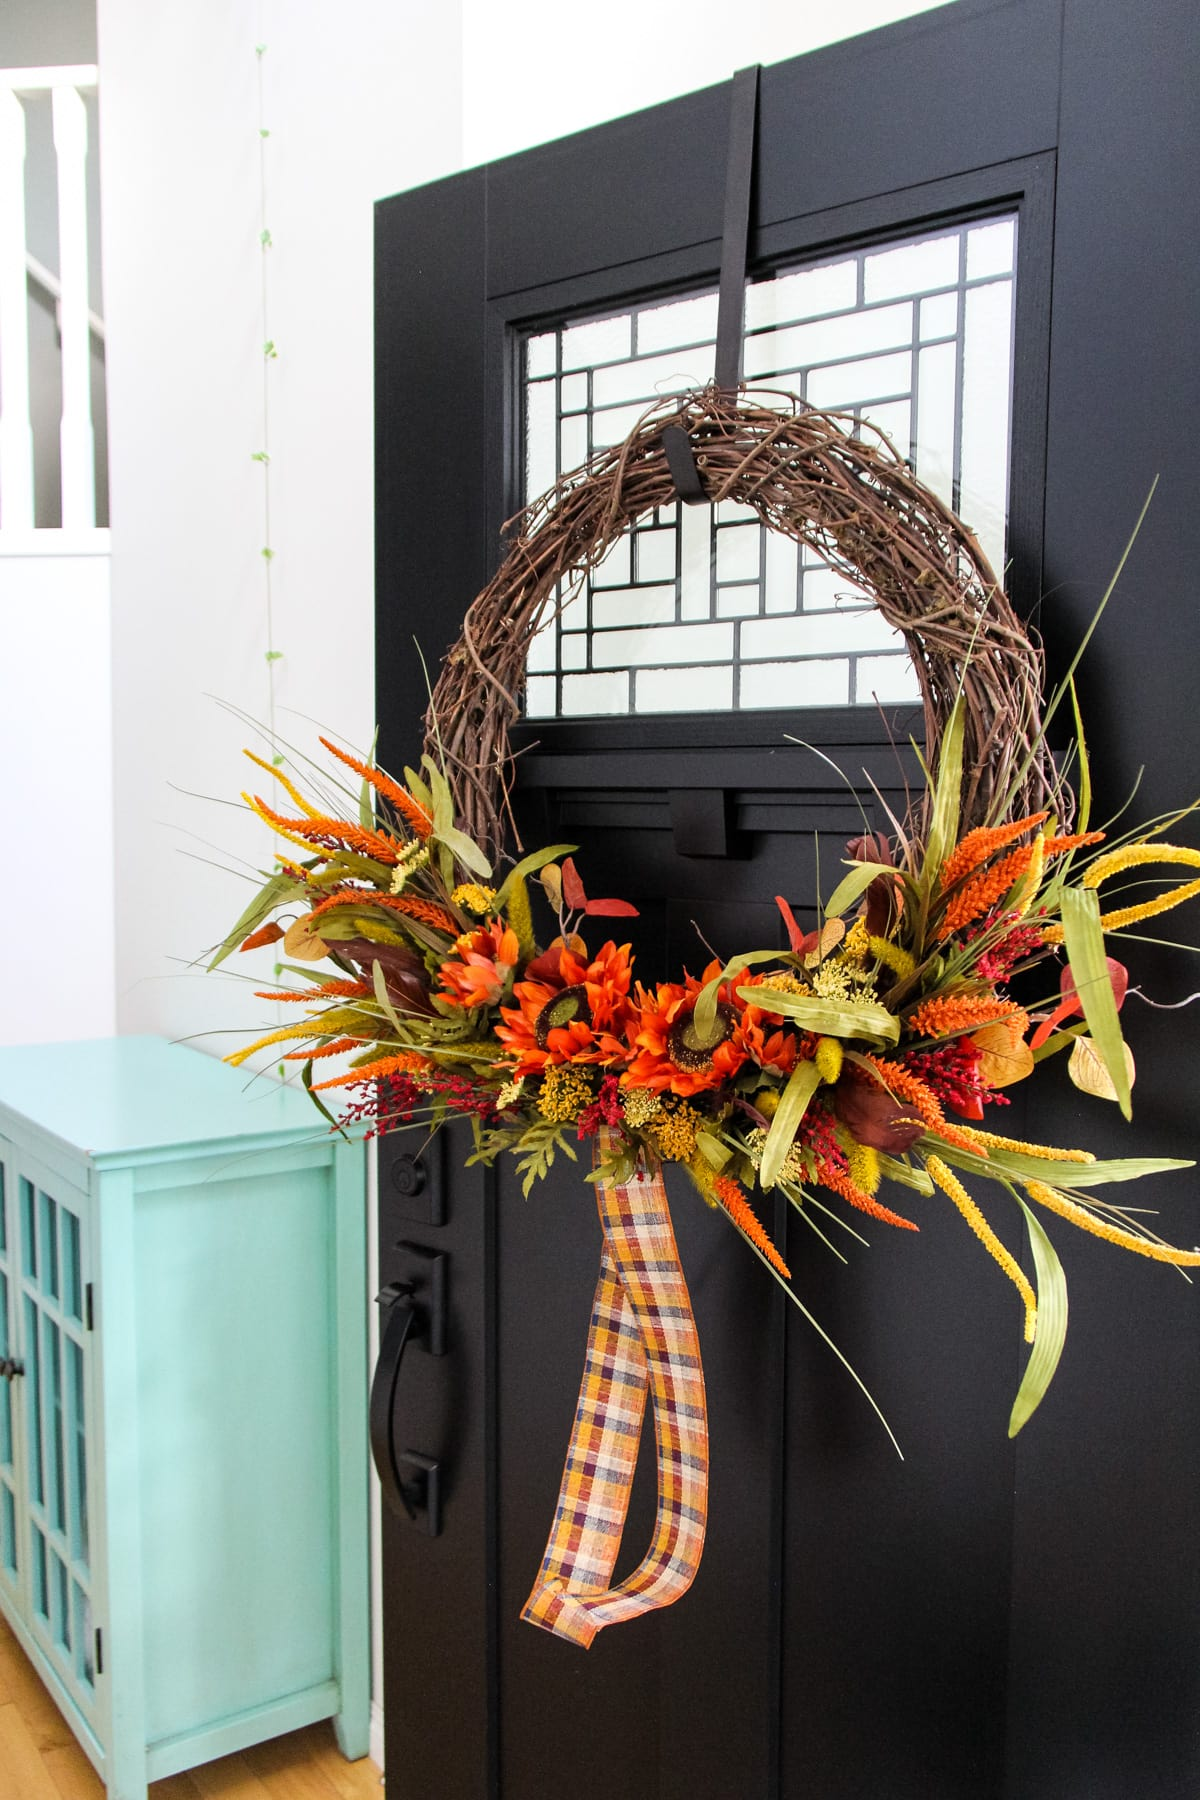 a large grapevine wreath decorated with dried fall florals stems and a plaid ribbon hangs on a black door. in the background is a teal cabinet